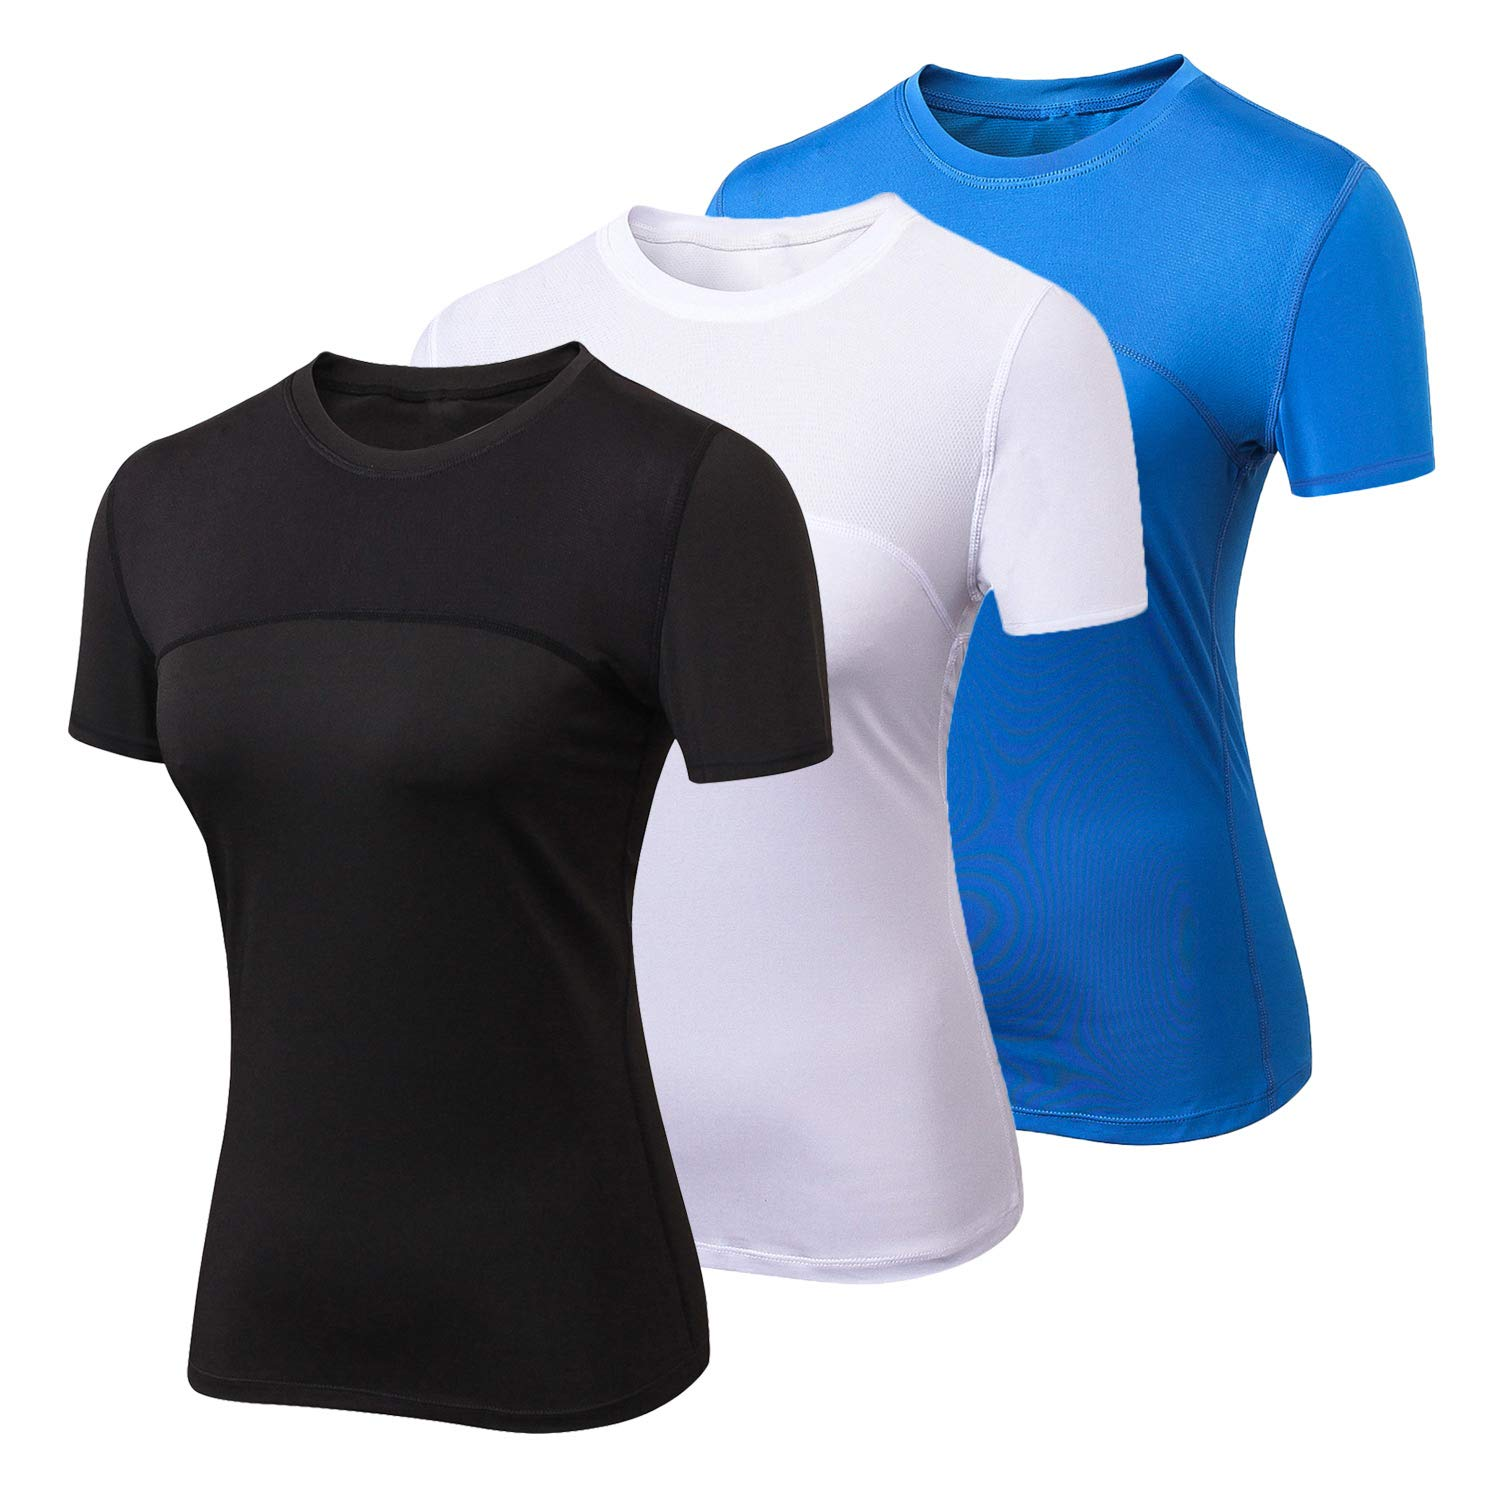 Women Workout Shirt Dry Fit Short Sleeve Sport Compression Tops Moisture Wicking Athletic T-Shirts